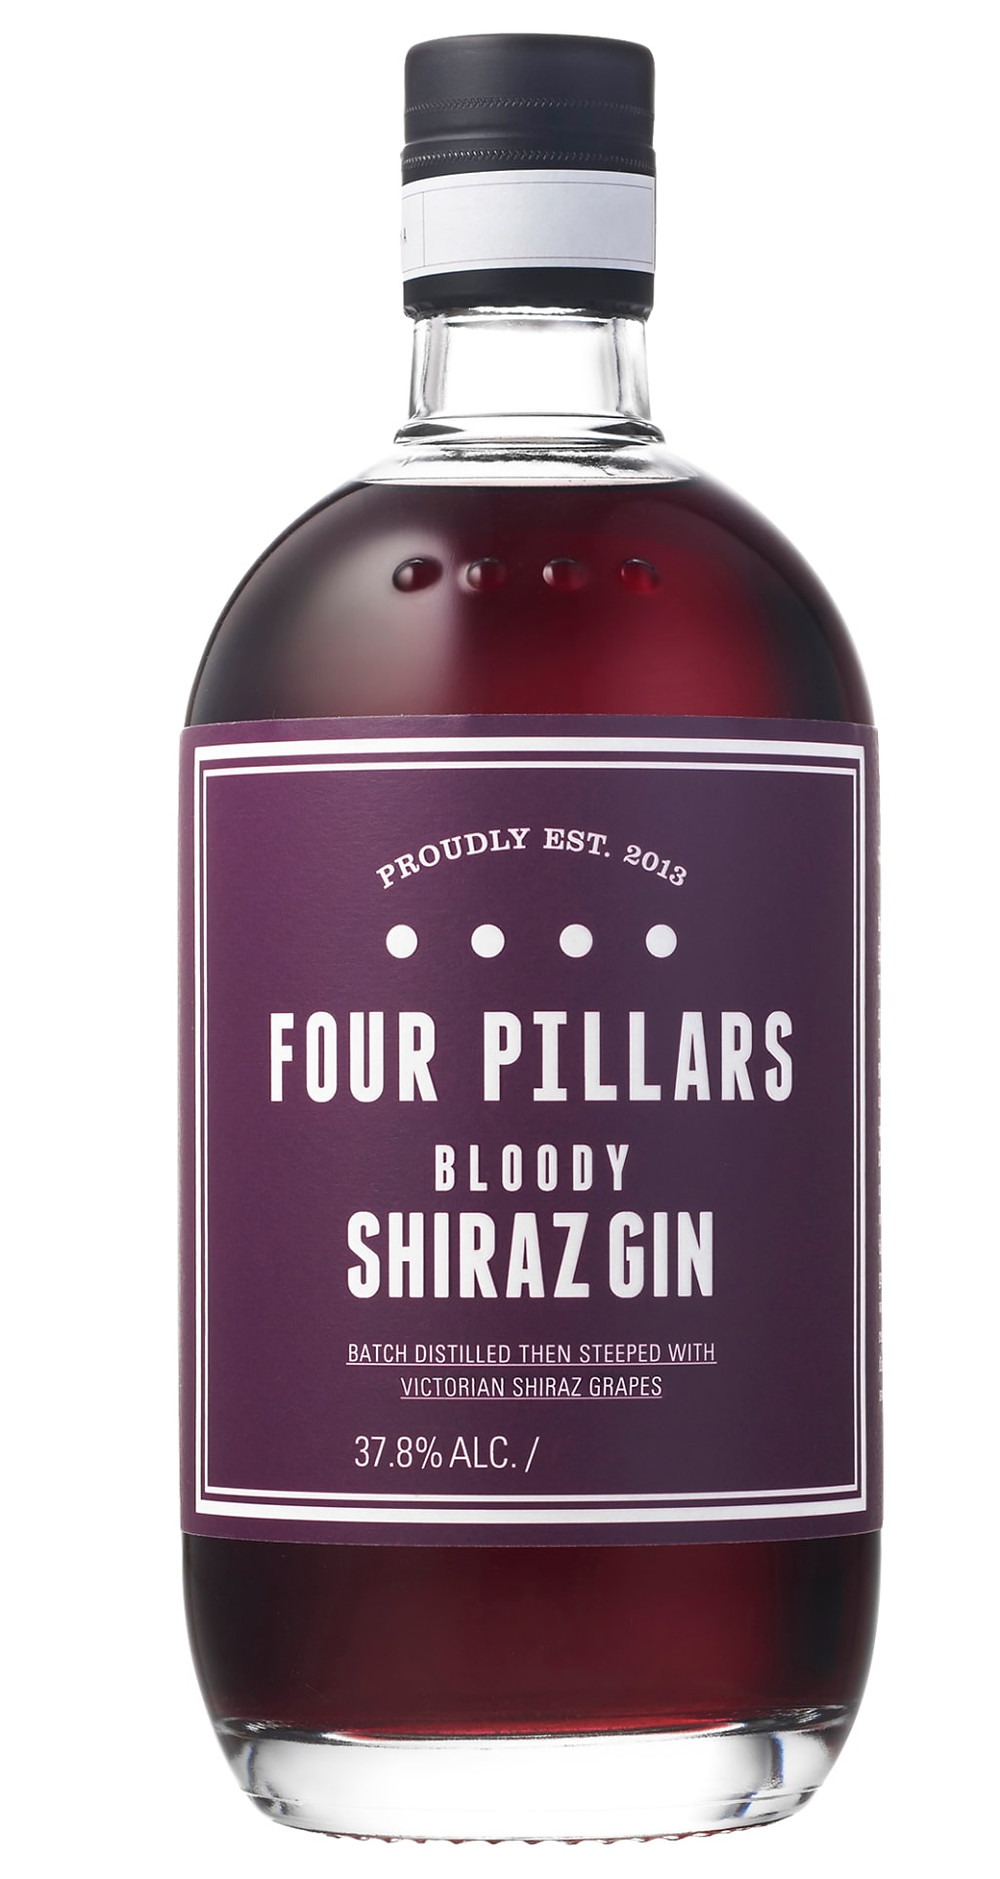 ruby-colored gin made by infusing it with shiraz grapes from the yarra valley in australia, unique gifts for the wine enthusiast